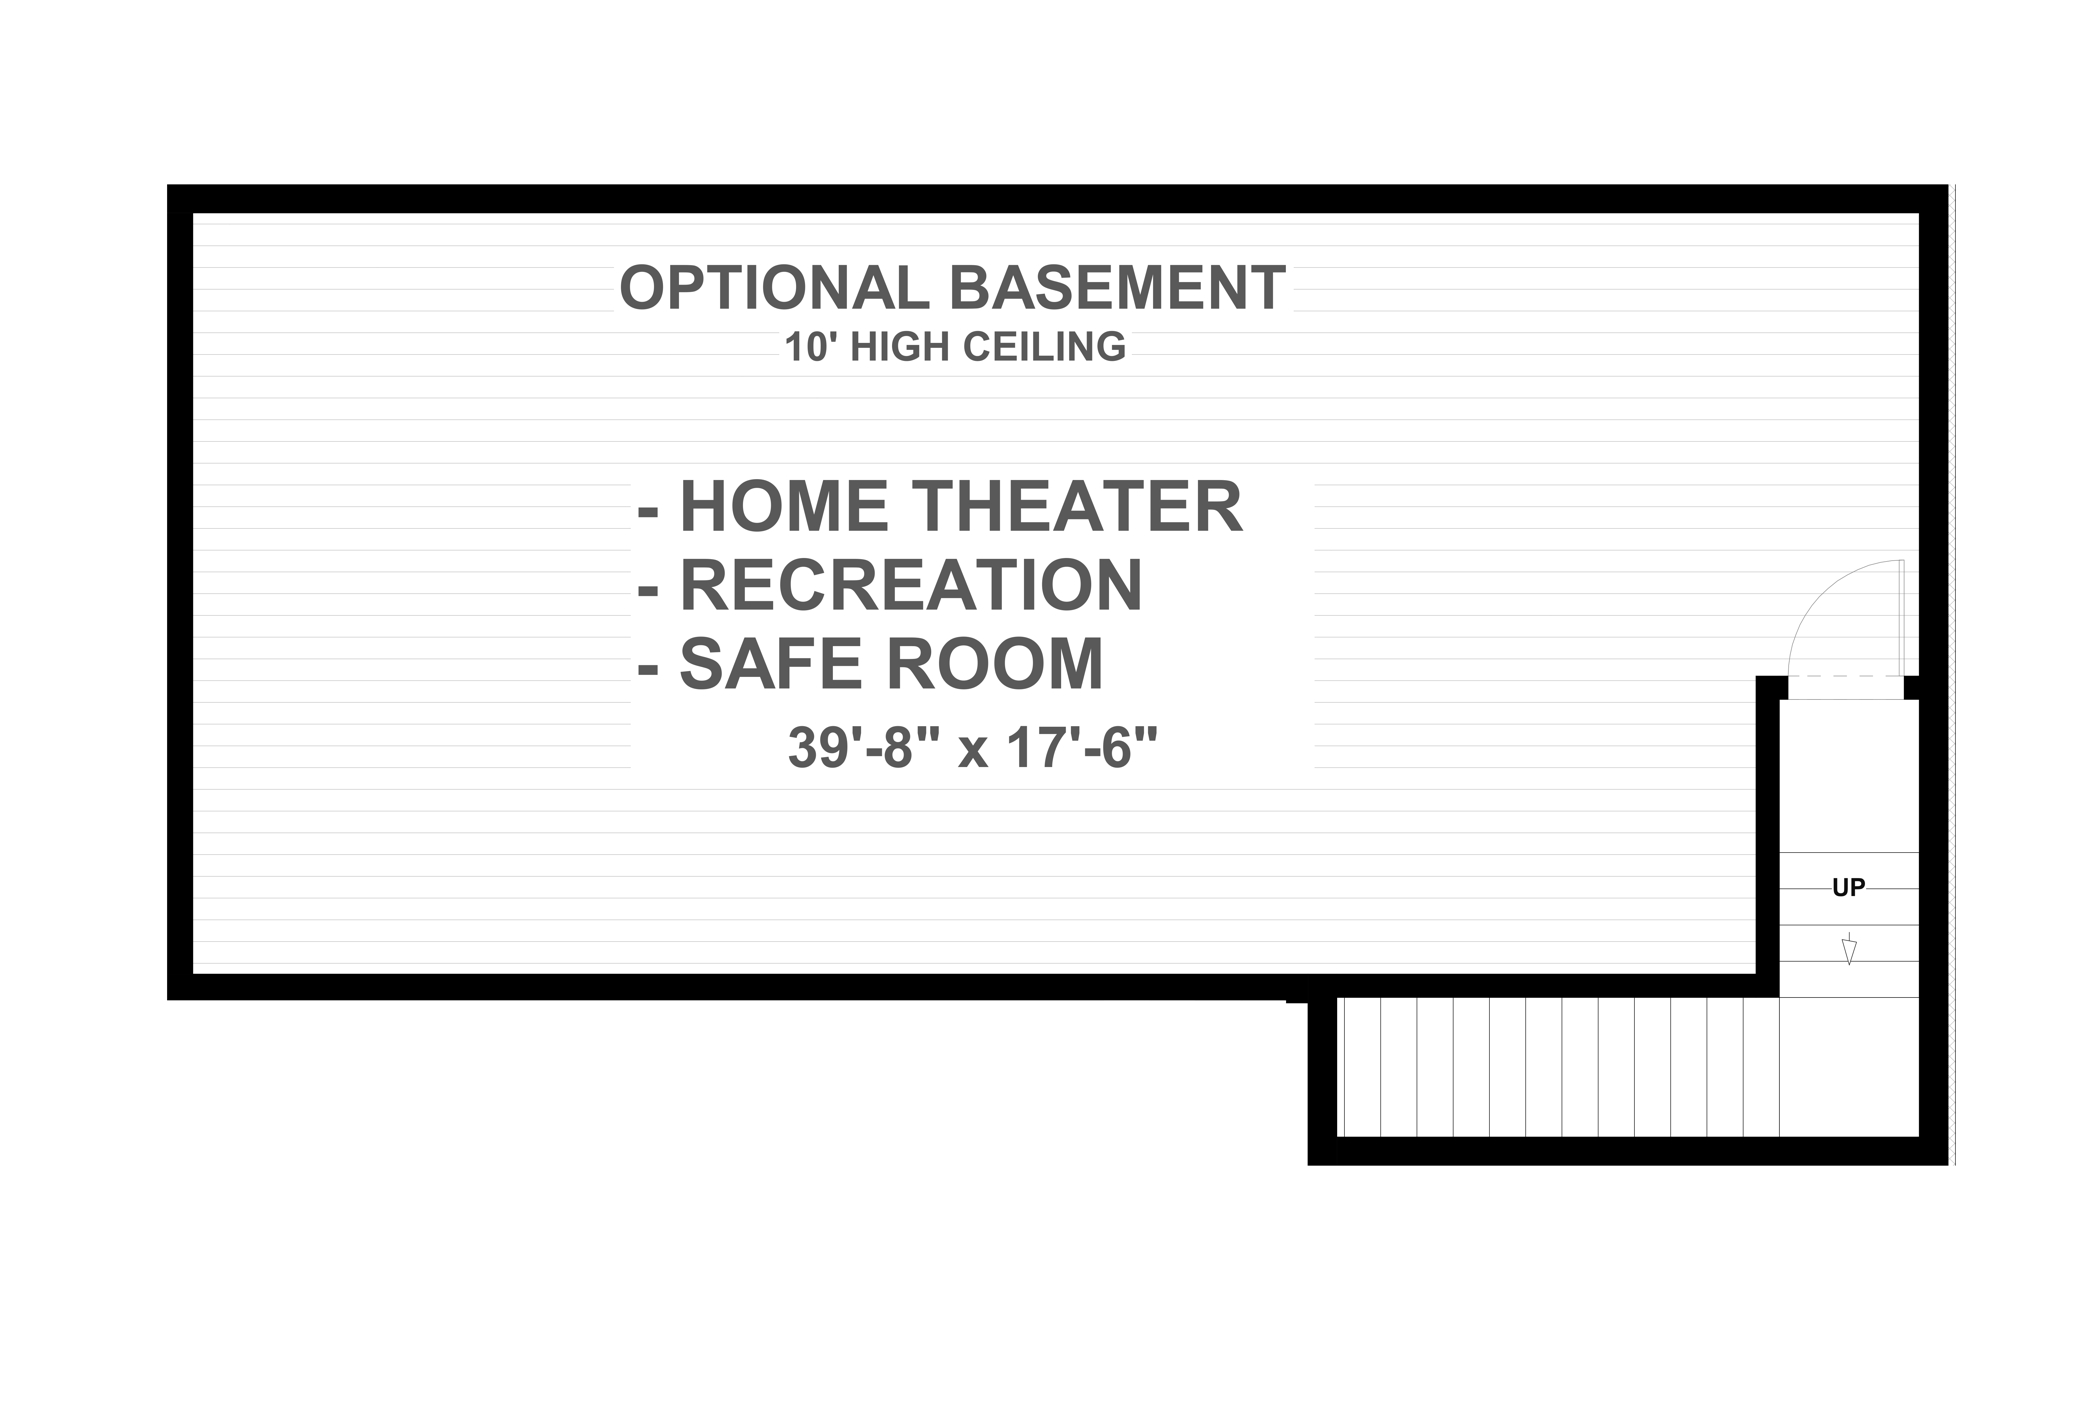 Basement Plan image of Featured House Plan: PBH - 4710